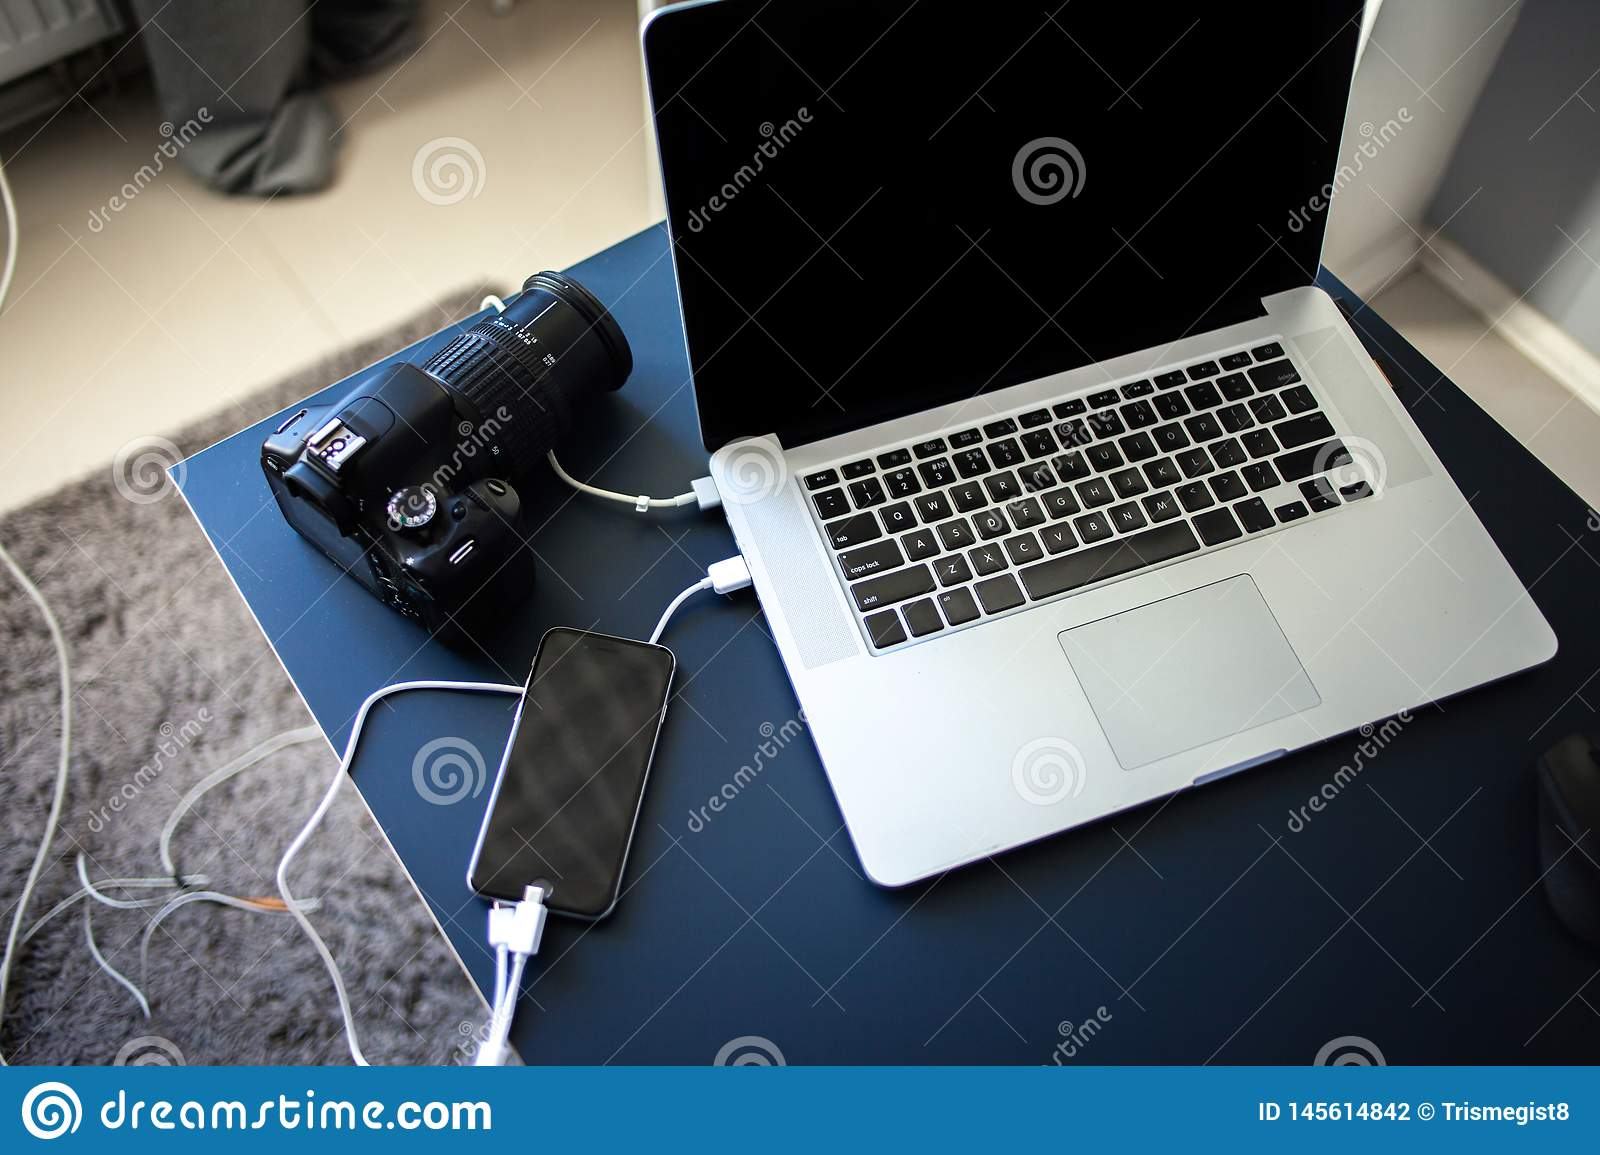 Workplace photographer and designer, laptop with camera and smartphone on the table.